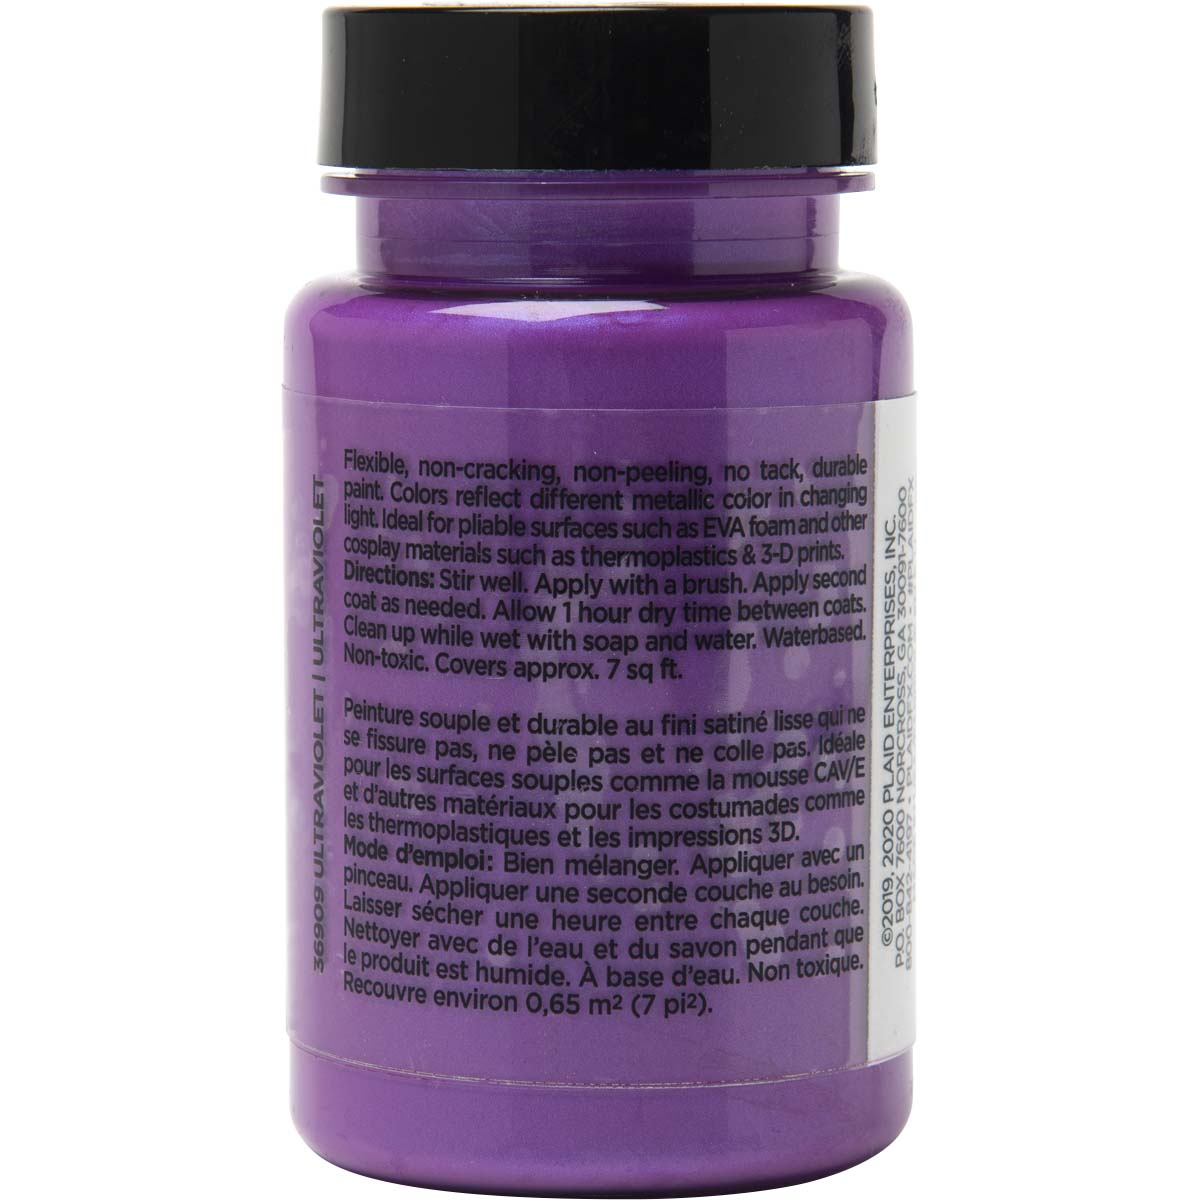 PlaidFX Mutant Shift Flexible Acrylic Paint - Ultraviolet, 3 oz. - 36909